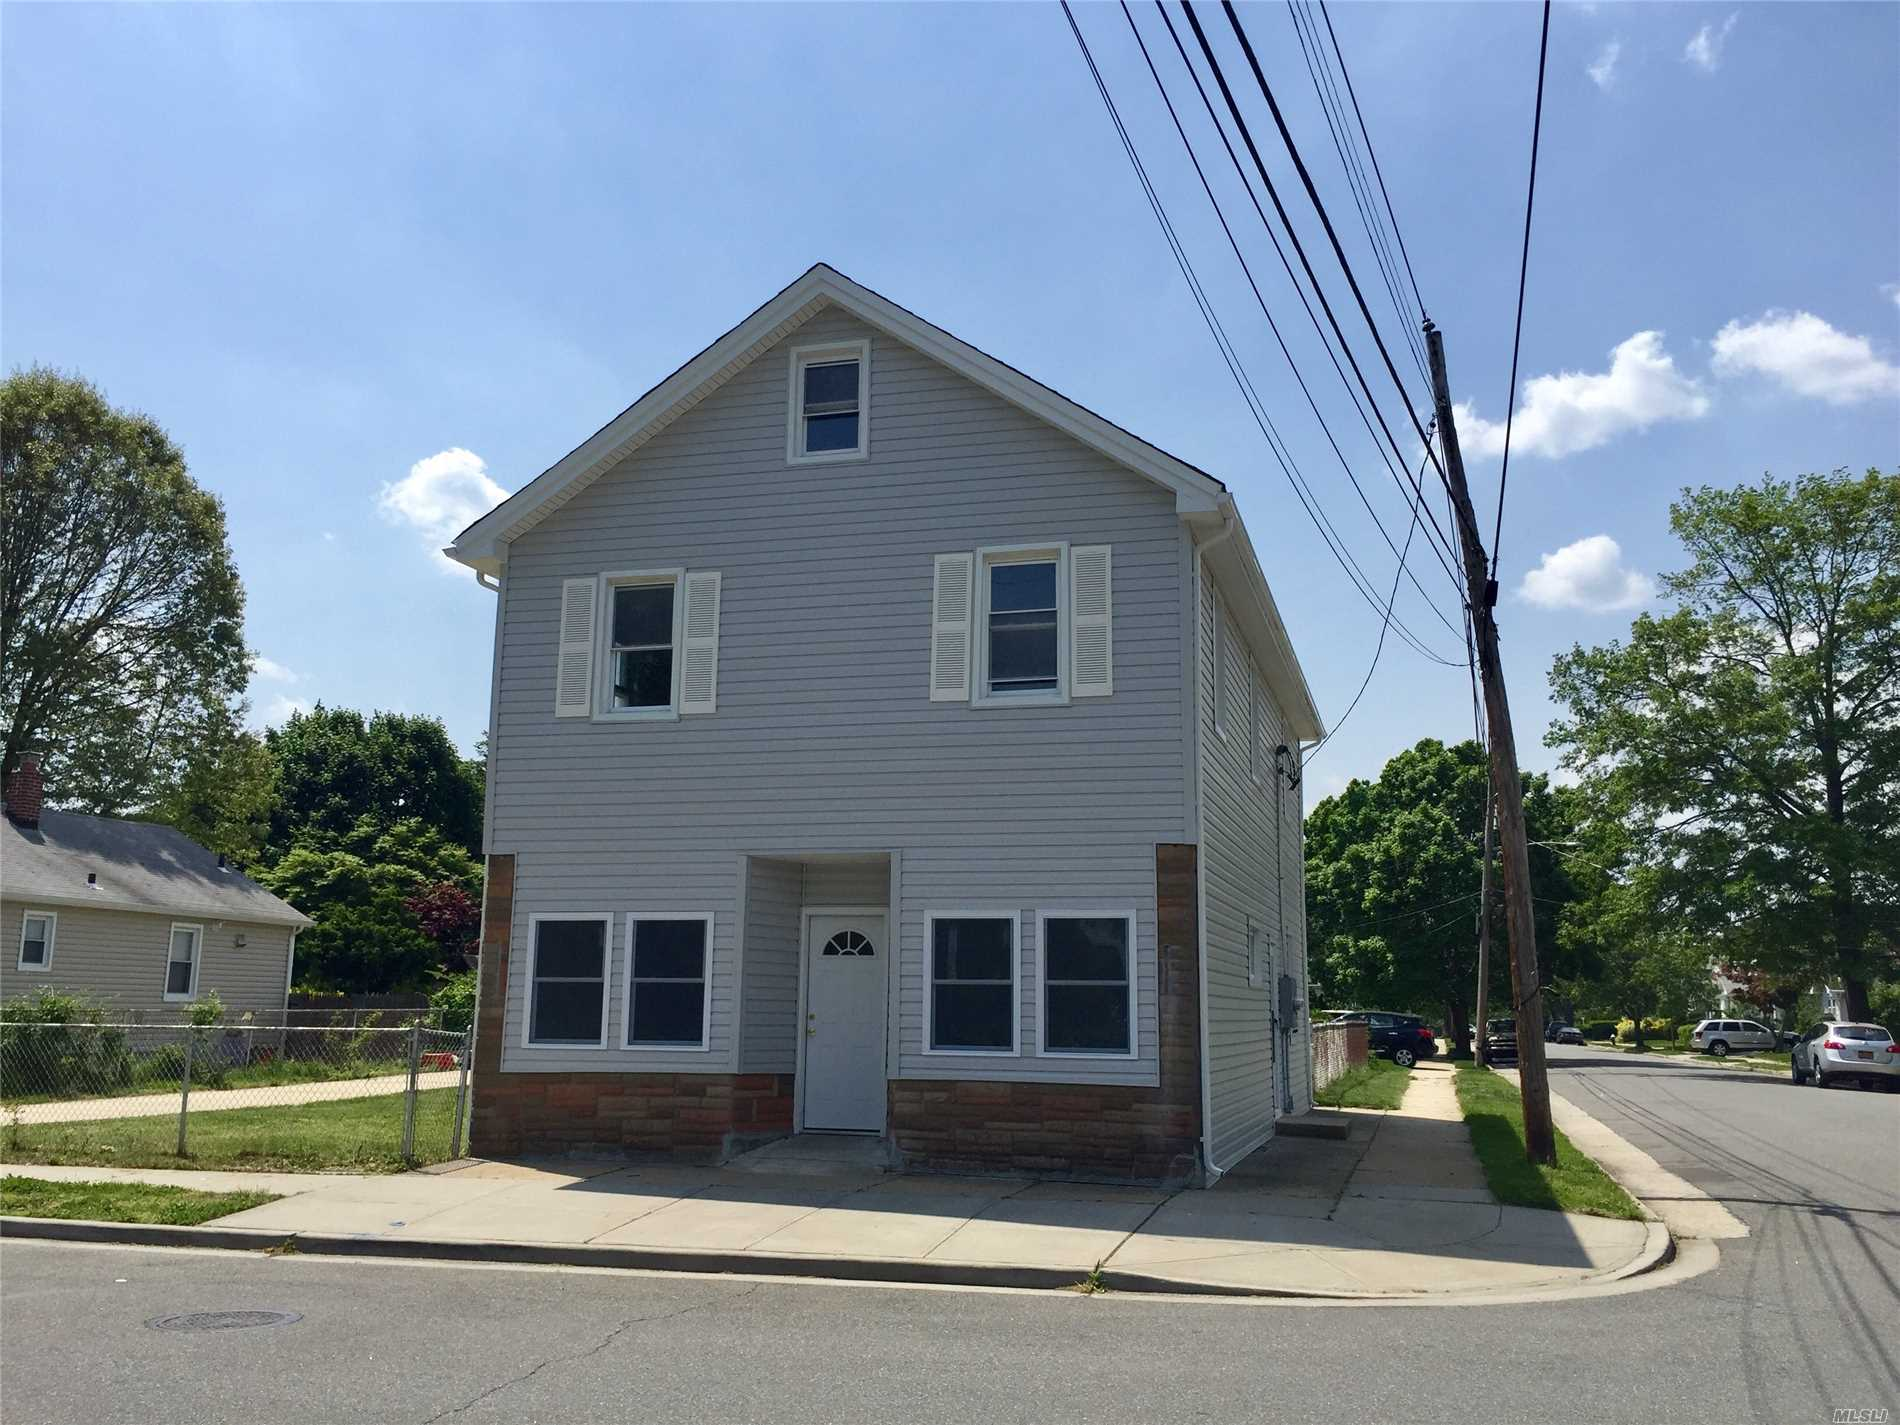 Legal 2 Family Home In West Hempstead, 3 Over 3. Two Car Garage, Large Property, Gas Heat And Cooking. Not 100% Completed But Soon.